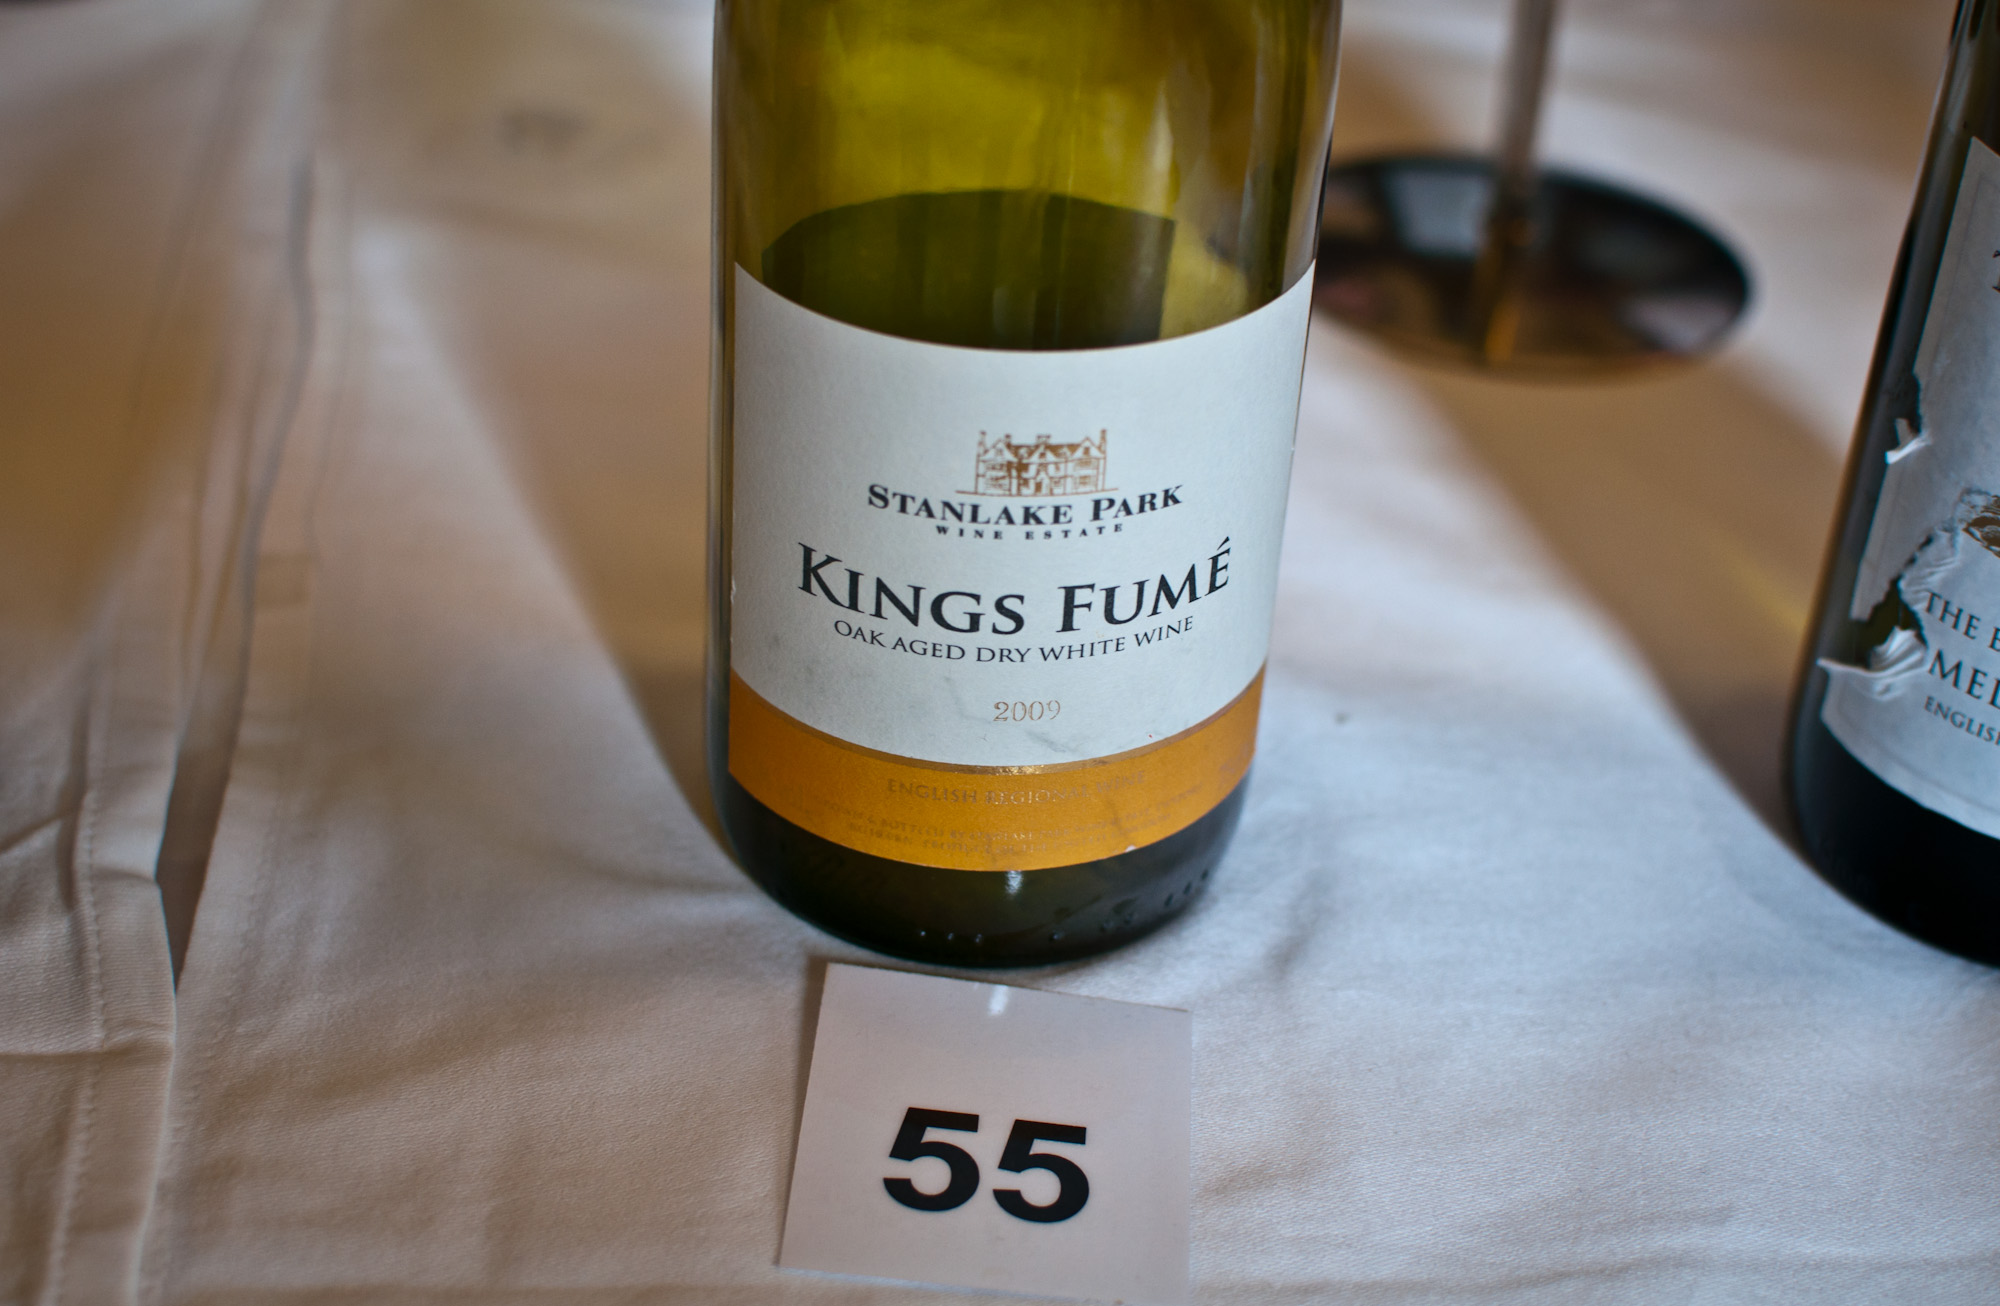 Kings Fumé